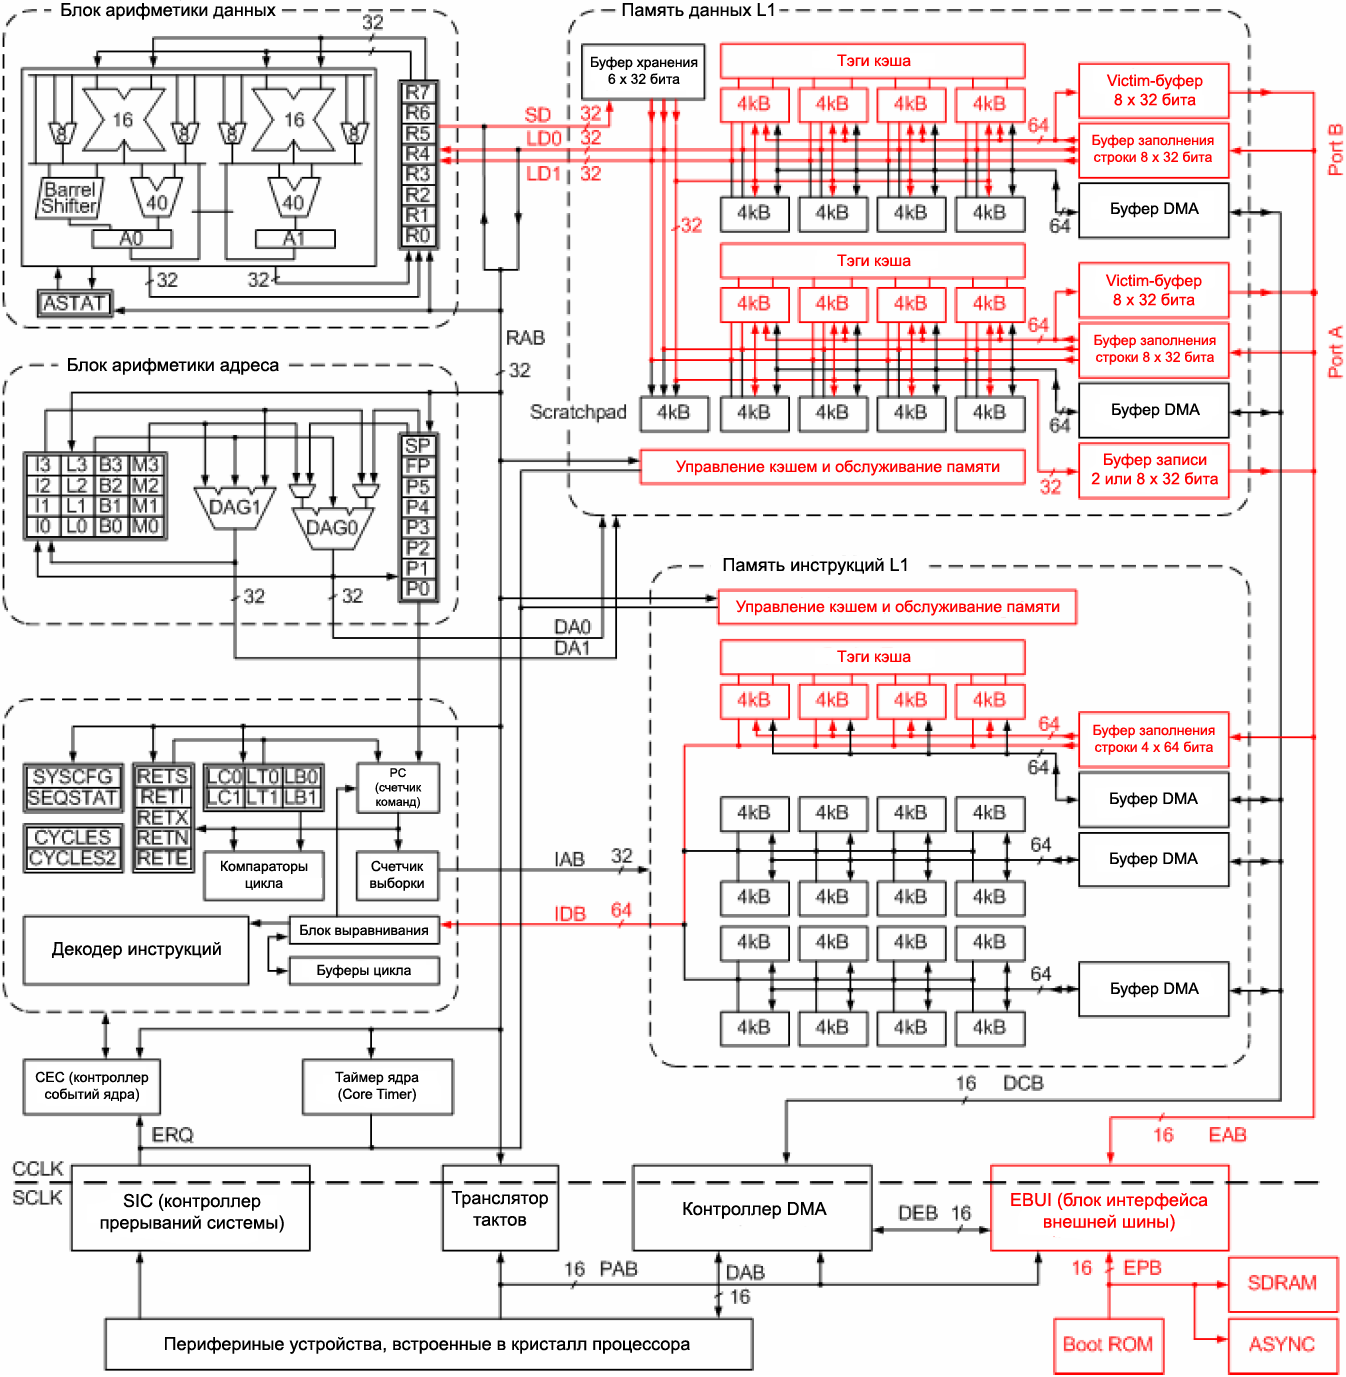 EE 271 ADSP BF533 block diagram